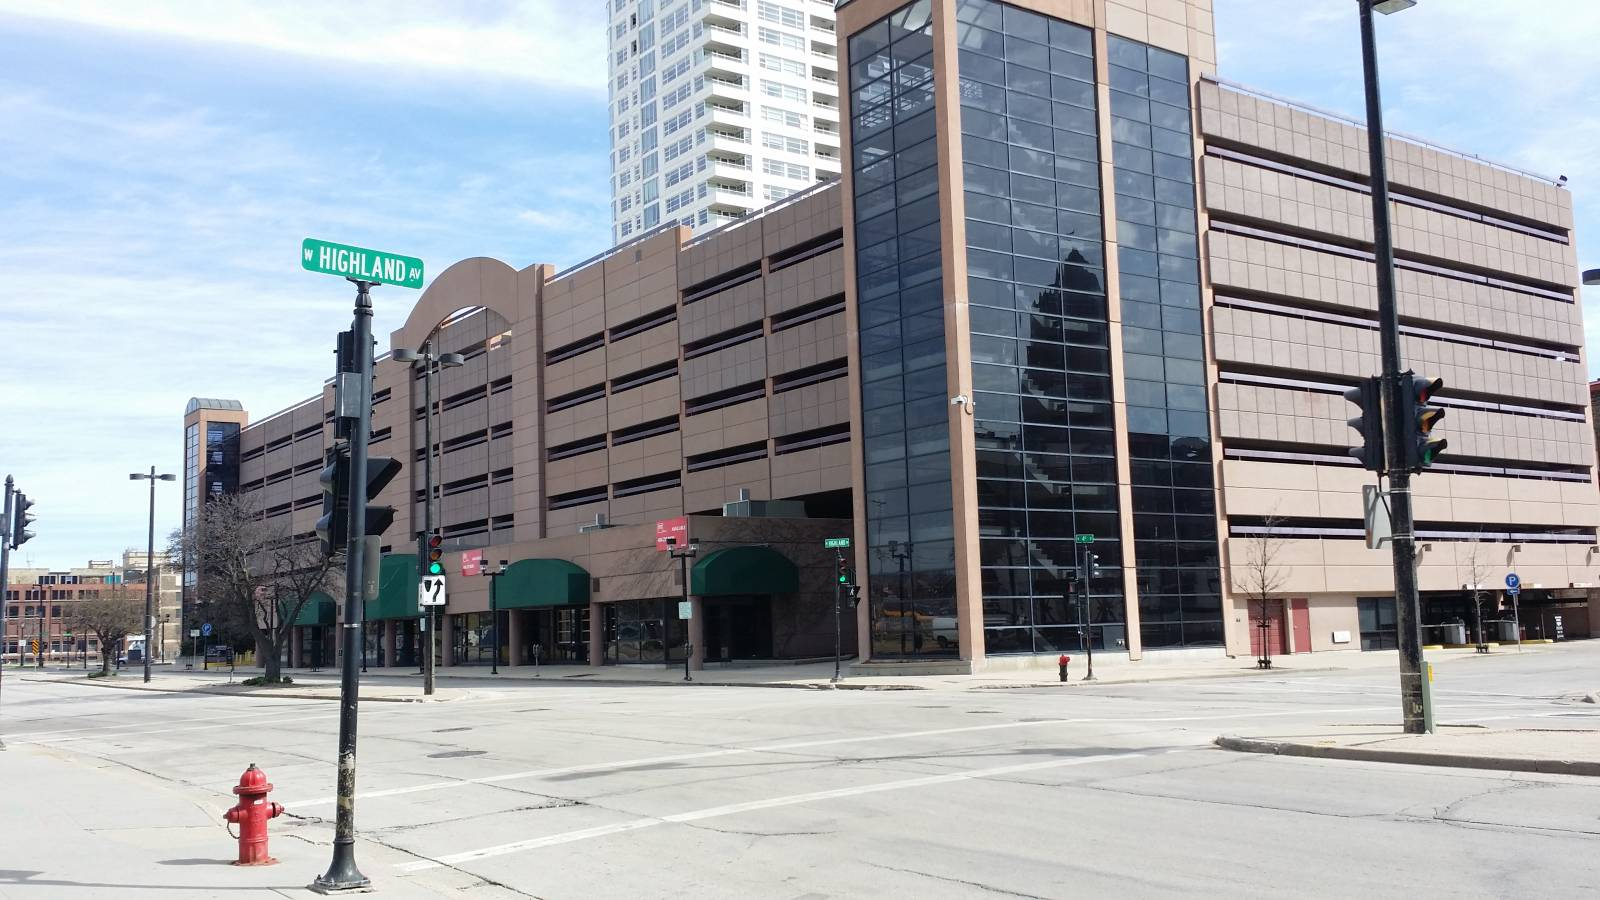 4th and Highland Parking Garage. Photo by Jack Fennimore.